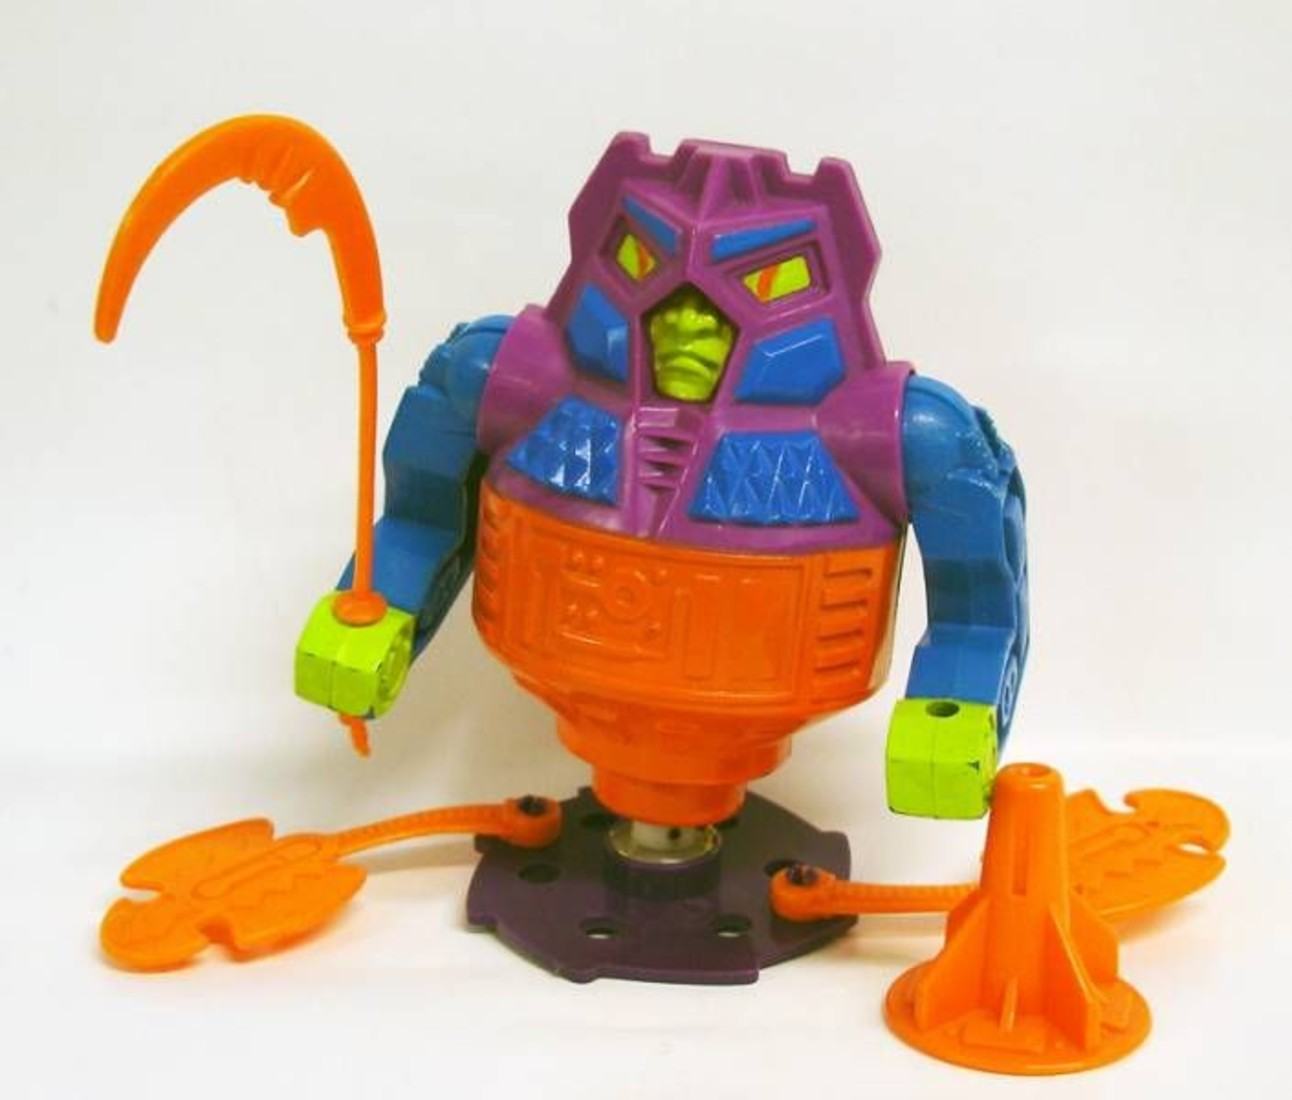 Every He-Man and the Masters of the Universe action figure